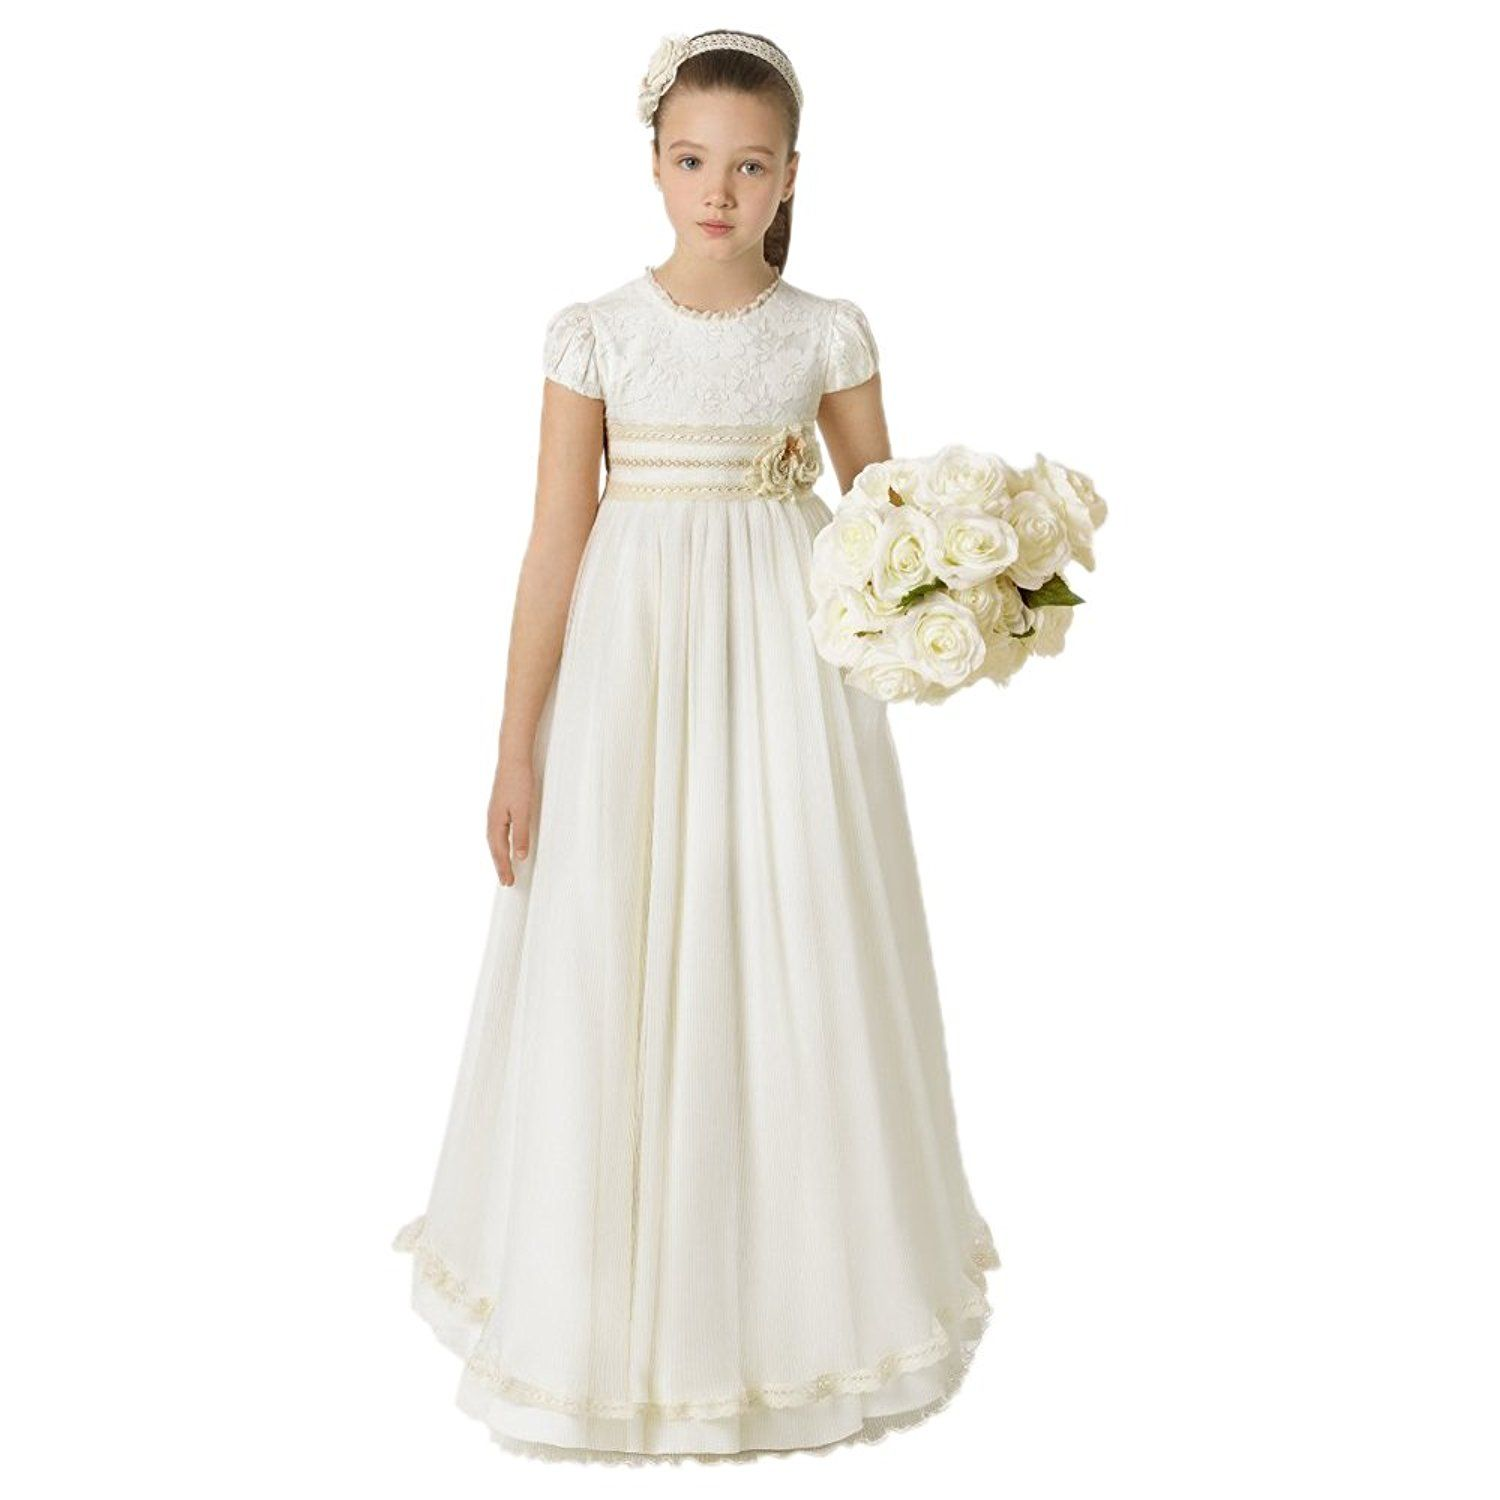 75c86341417d9 Amazon.com: White Girls First Communion Dresses Princess Lovely Gowns 2016  2-12 Year Old: Clothing